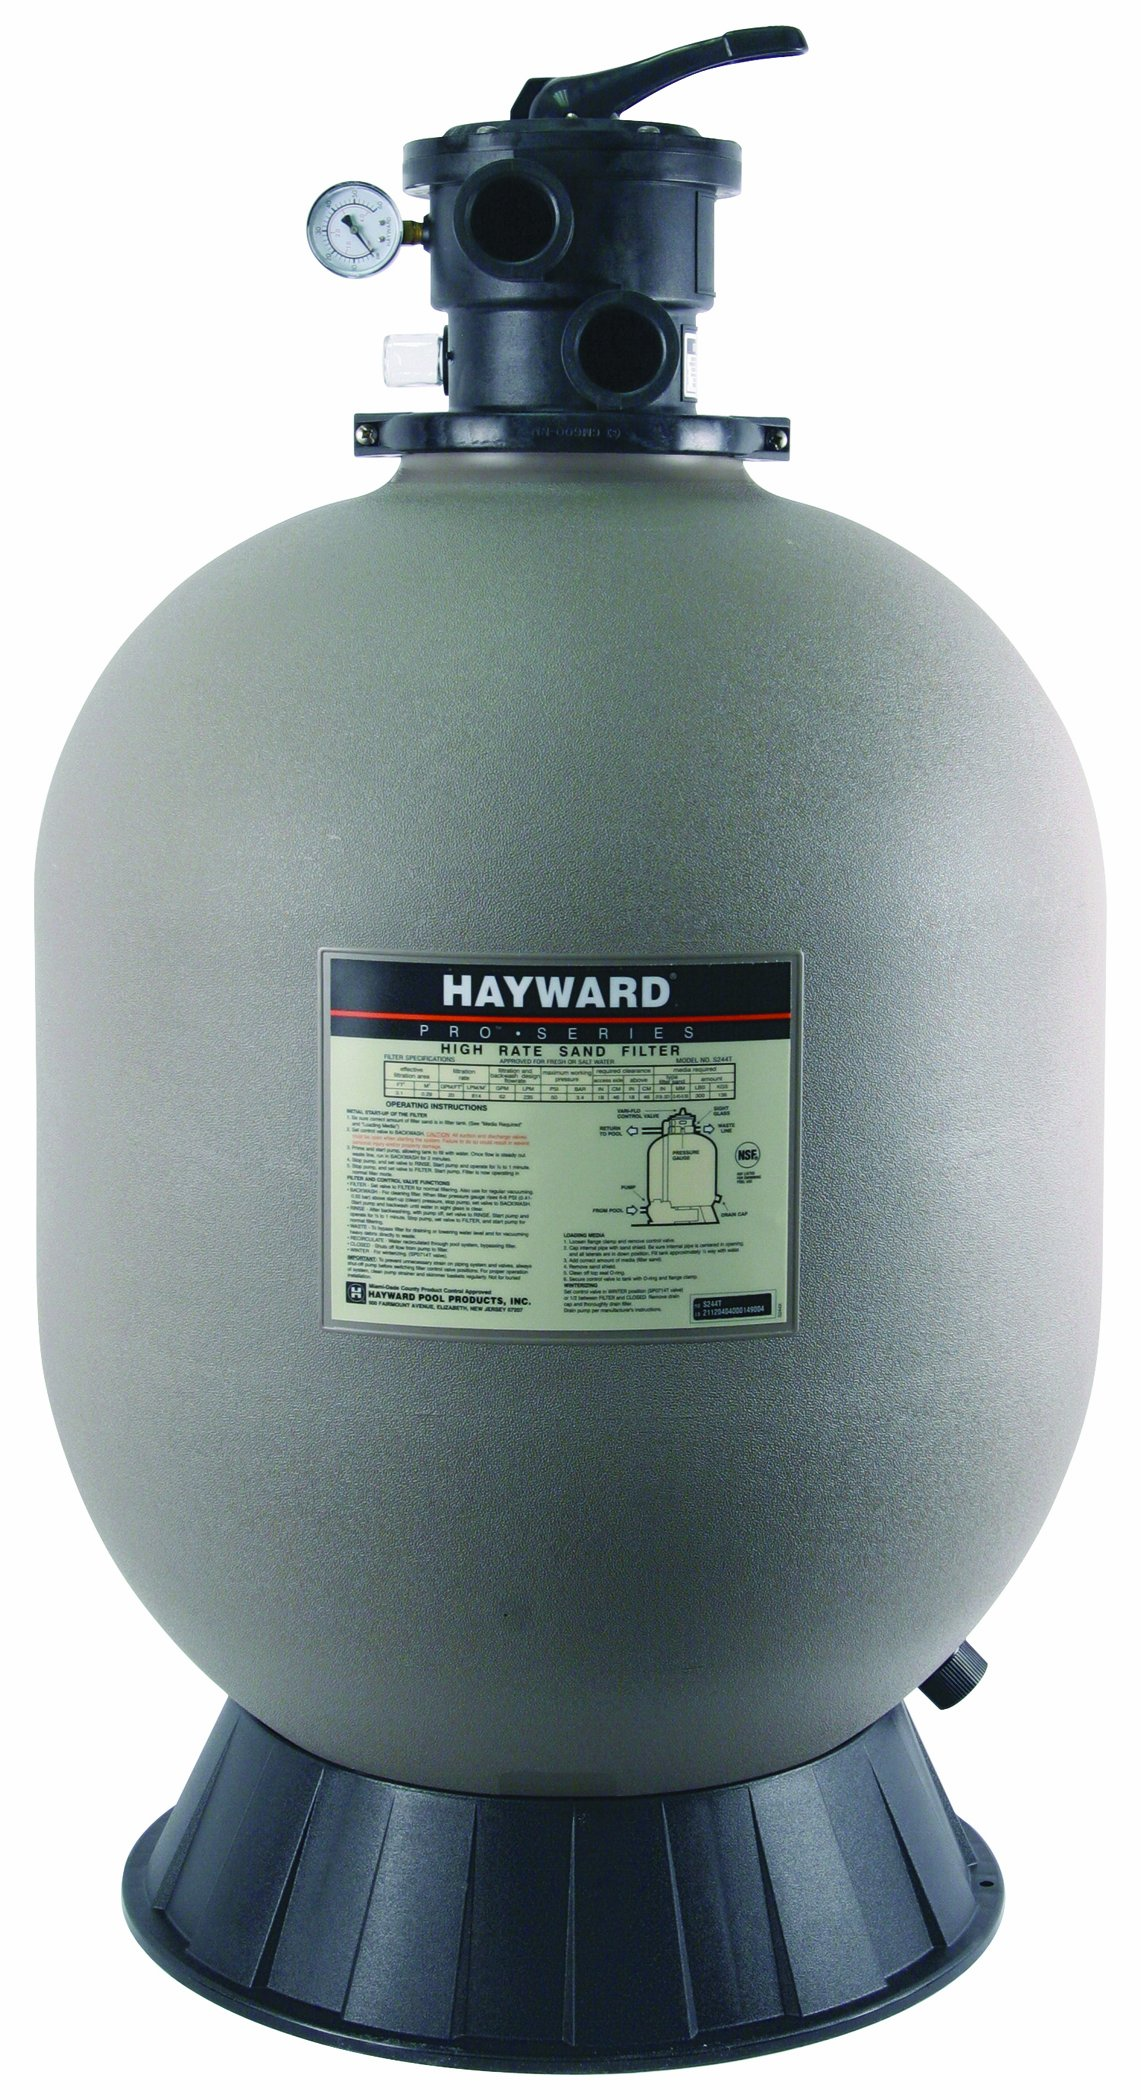 Amazon.com : Hayward S244T ProSeries Sand Filter, 24-Inch, Top-Mount :  Swimming Pool Sand Filters : Garden & Outdoor